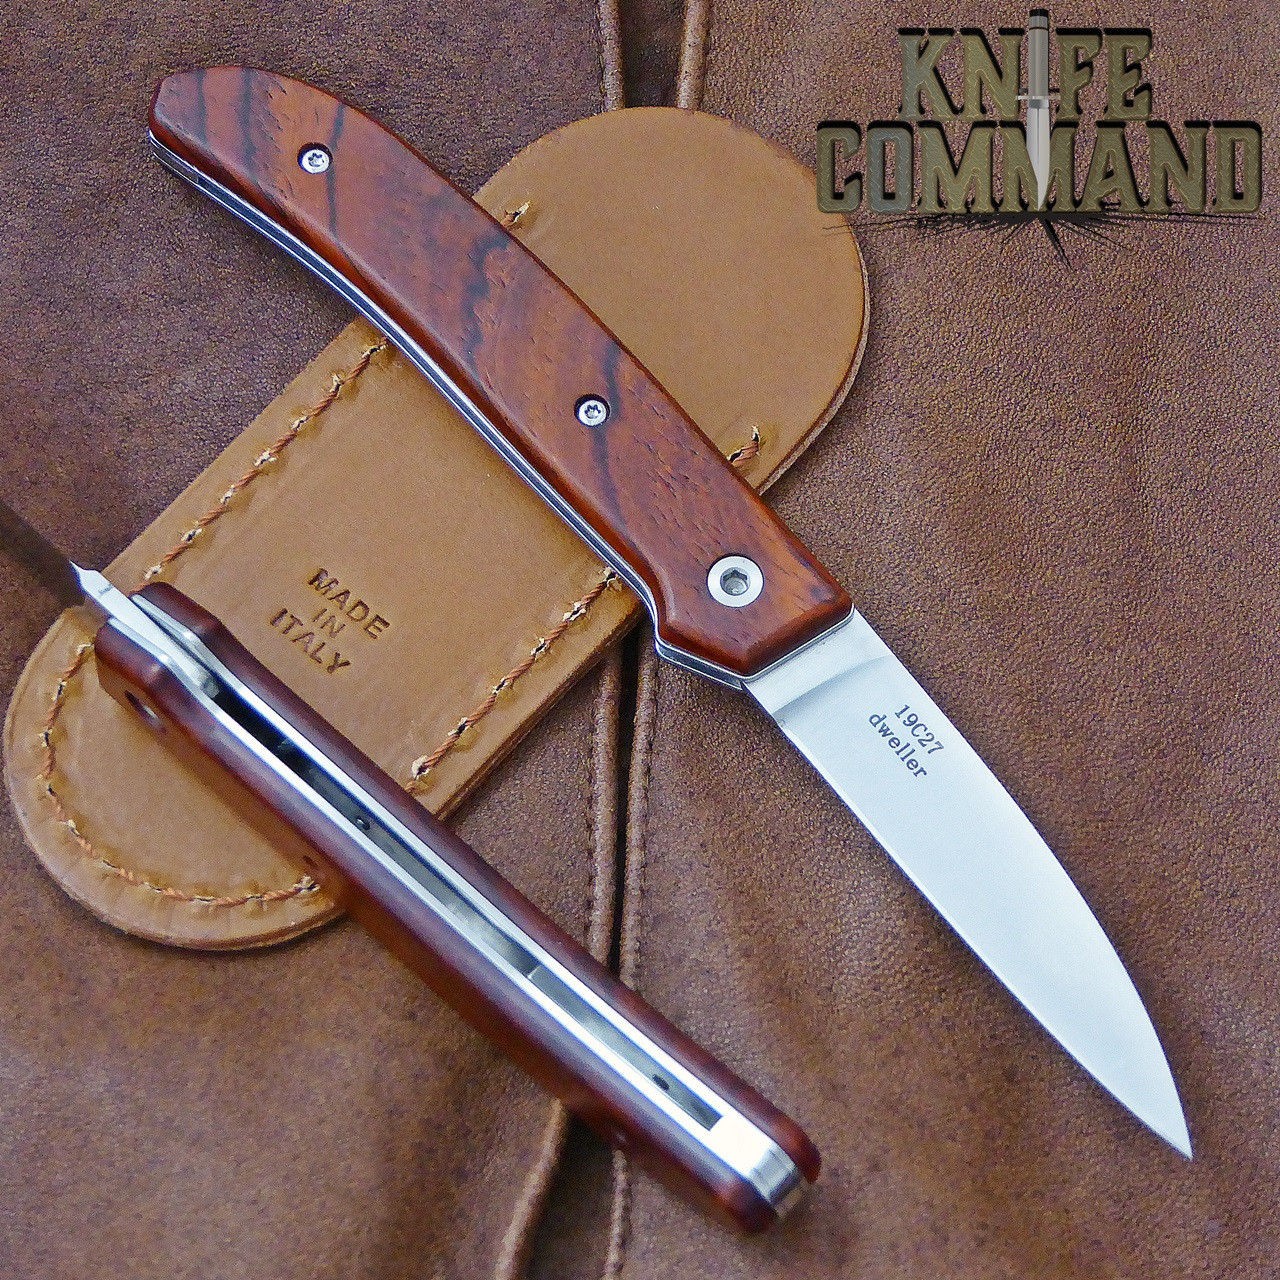 Fantoni Dweller Cocobolo S Italian Made Slip-joint EDC Pocket Knife.  Now with stainless steel liners.